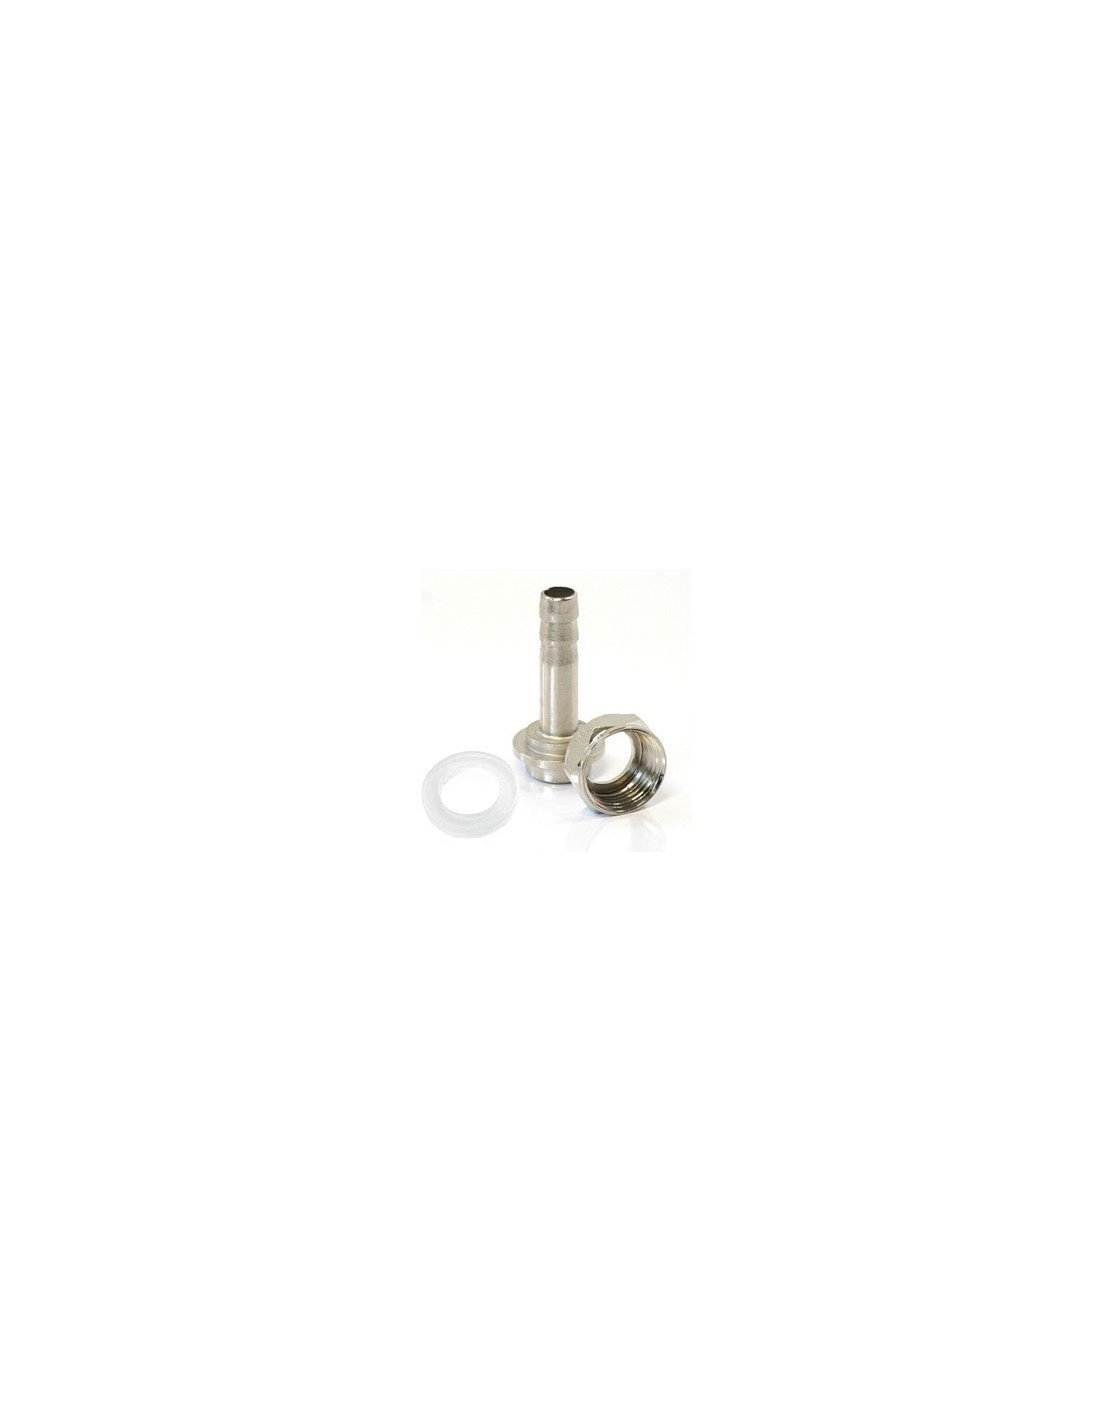 "OST02228 - G5/8"" nut + straight barbed connector + gasket"